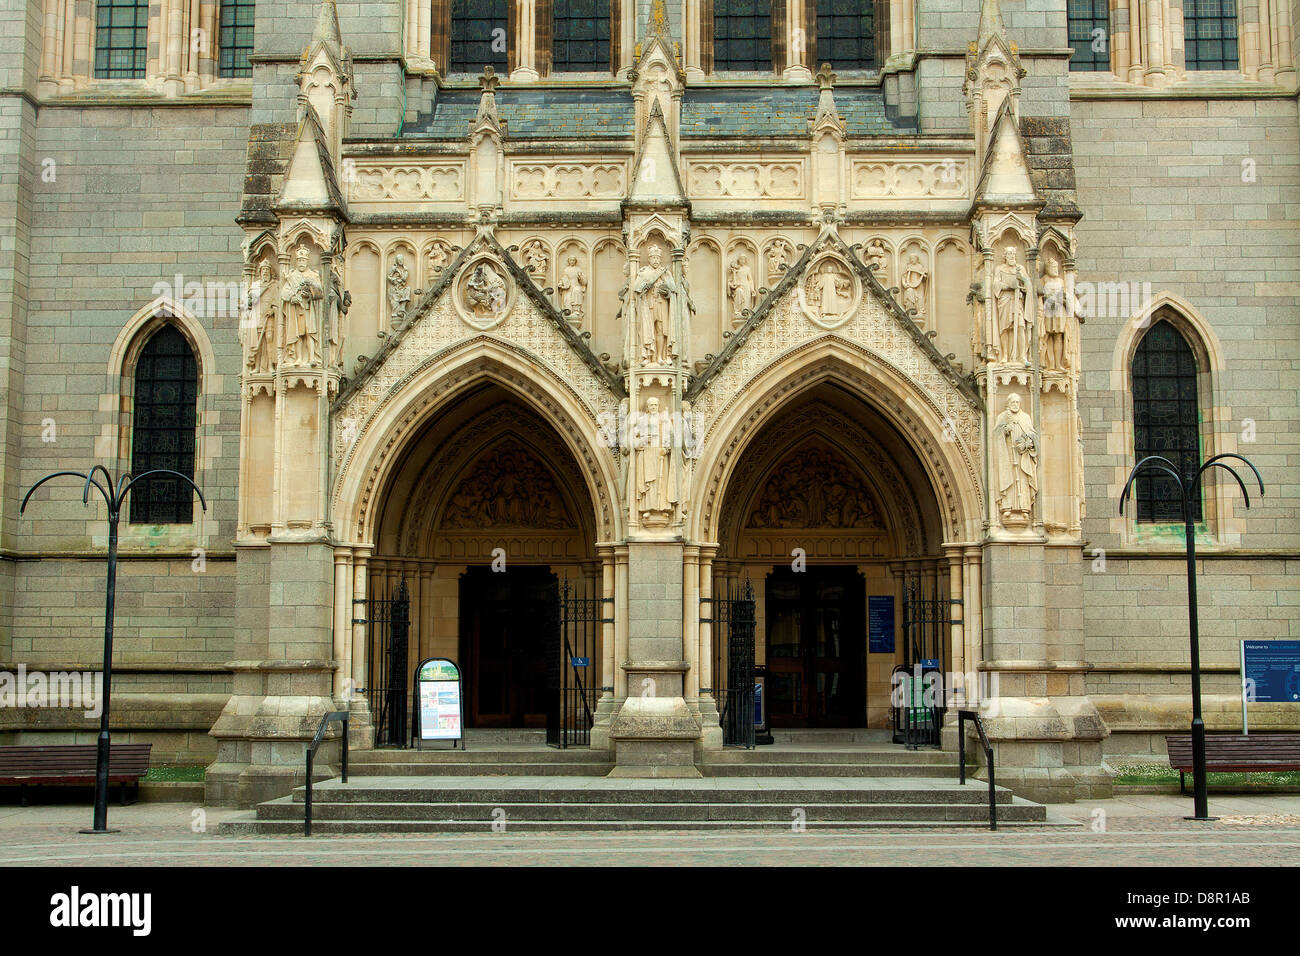 The entrance of Truro Cathedral, Truro, Cornwall - Stock Image